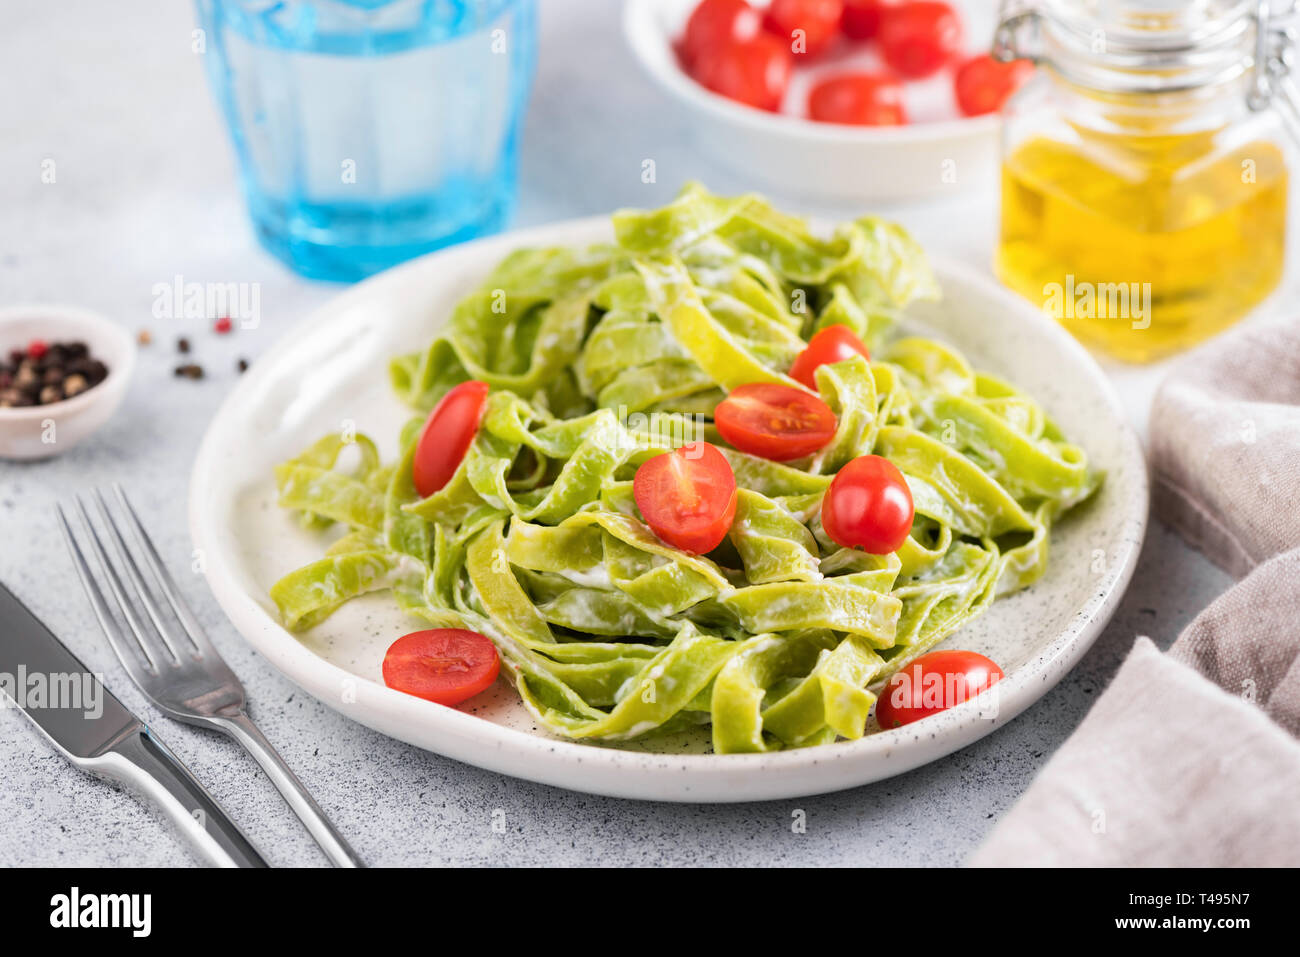 Green spinach pasta with cream sauce and tomatoes on a plate. Italian cuisine food. Closeup view, horizontal orientation - Stock Image